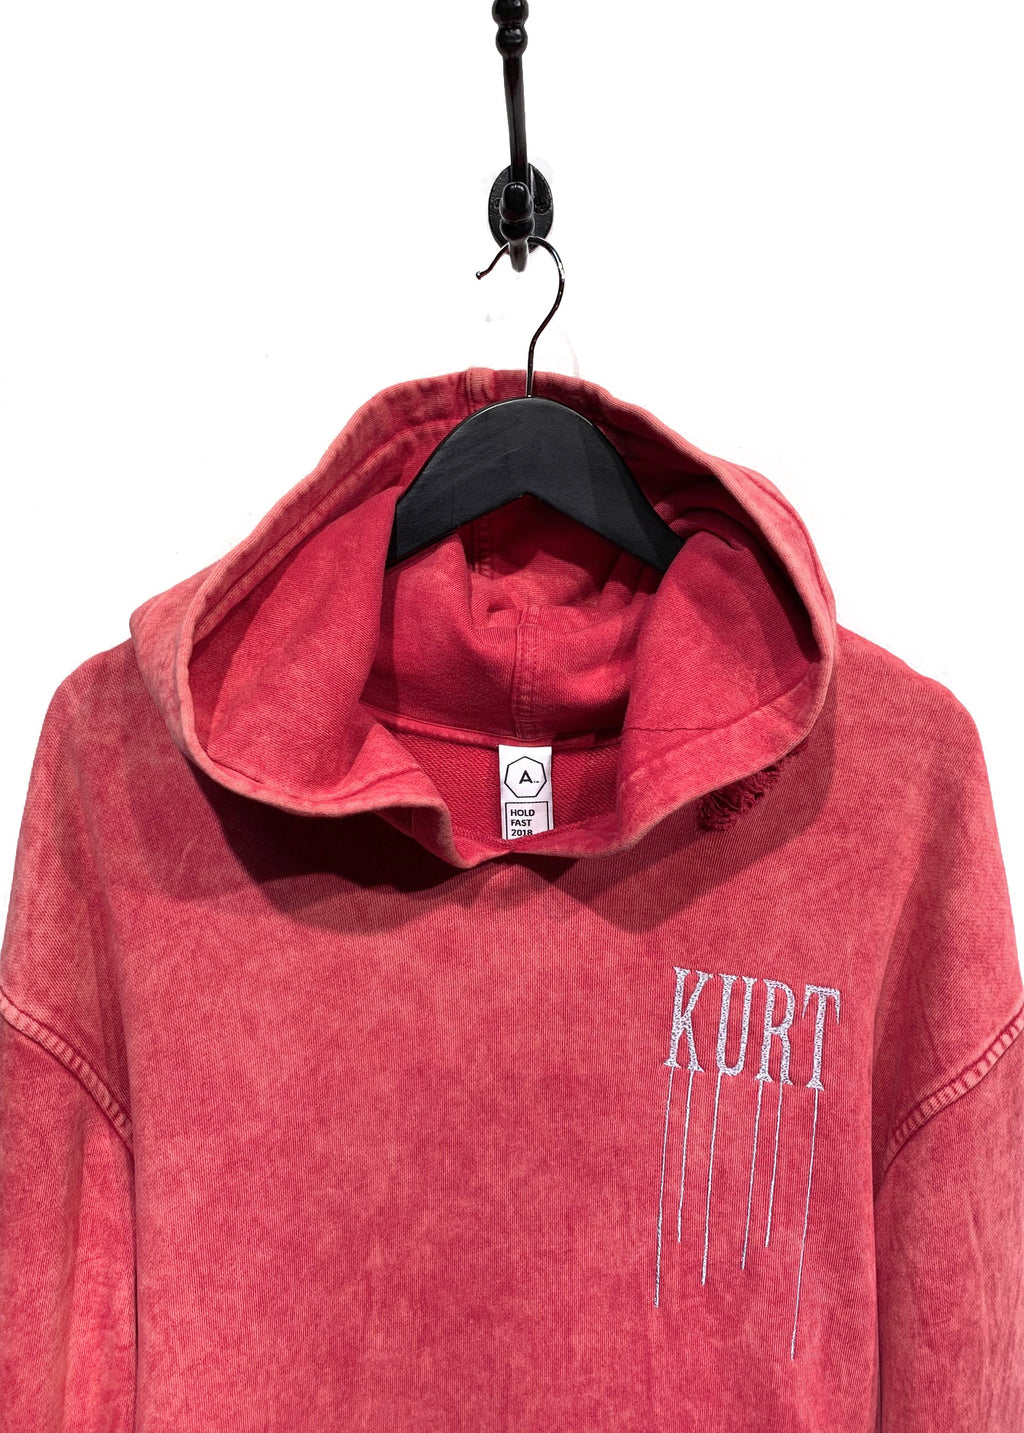 "Alchemist Hold Fast 2018 Pink ""Kurt"" Embroidered Printed Destroyed Hoodie"